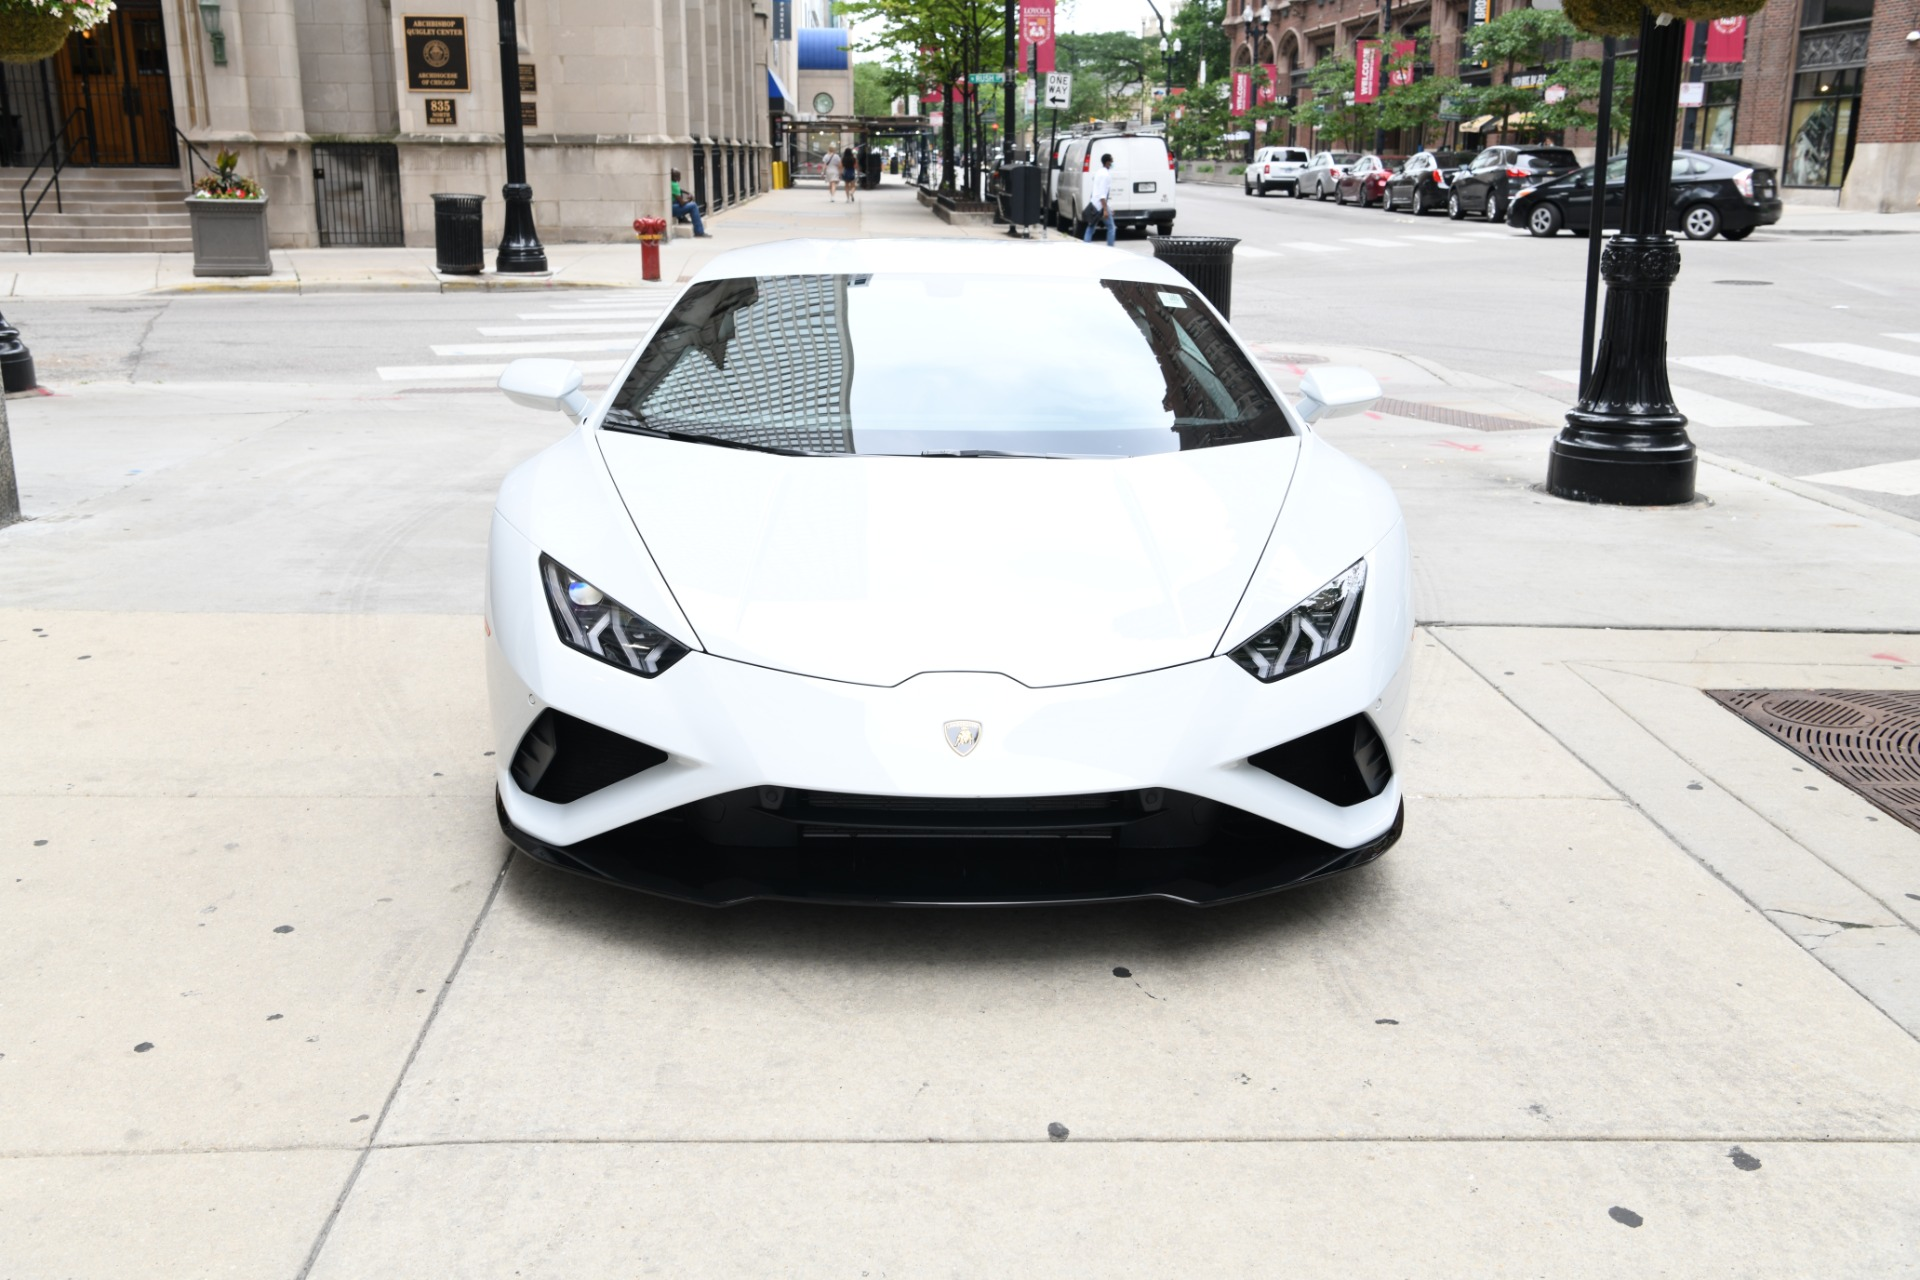 New 2020 Lamborghini Huracan EVO LP 610-4 EVO | Chicago, IL